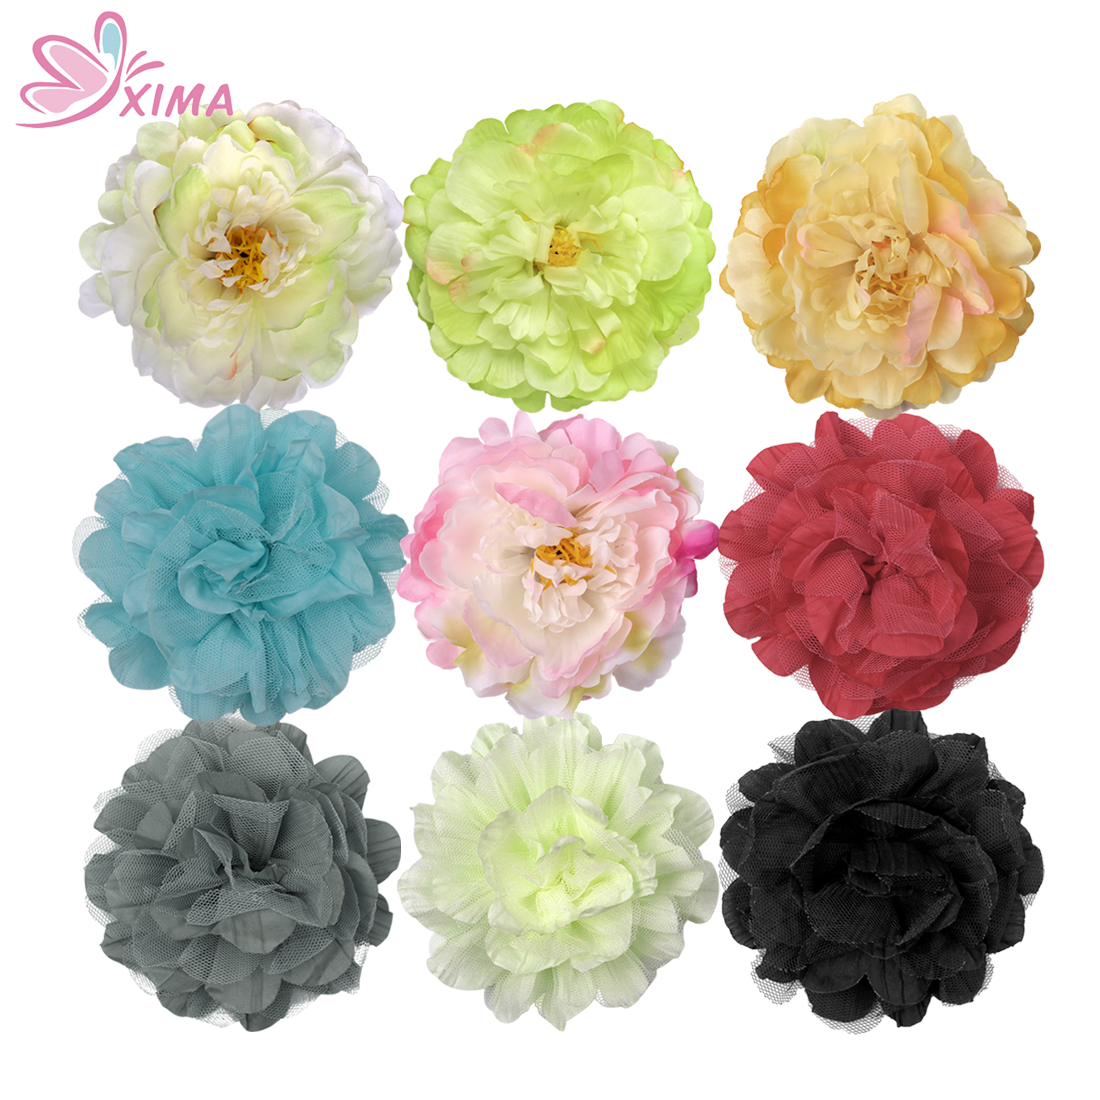 Online get cheap fake hair flowers aliexpress alibaba group xima 9pcslot kids fake floral hair bows big peony corsage and lace flower alligator dhlflorist Choice Image